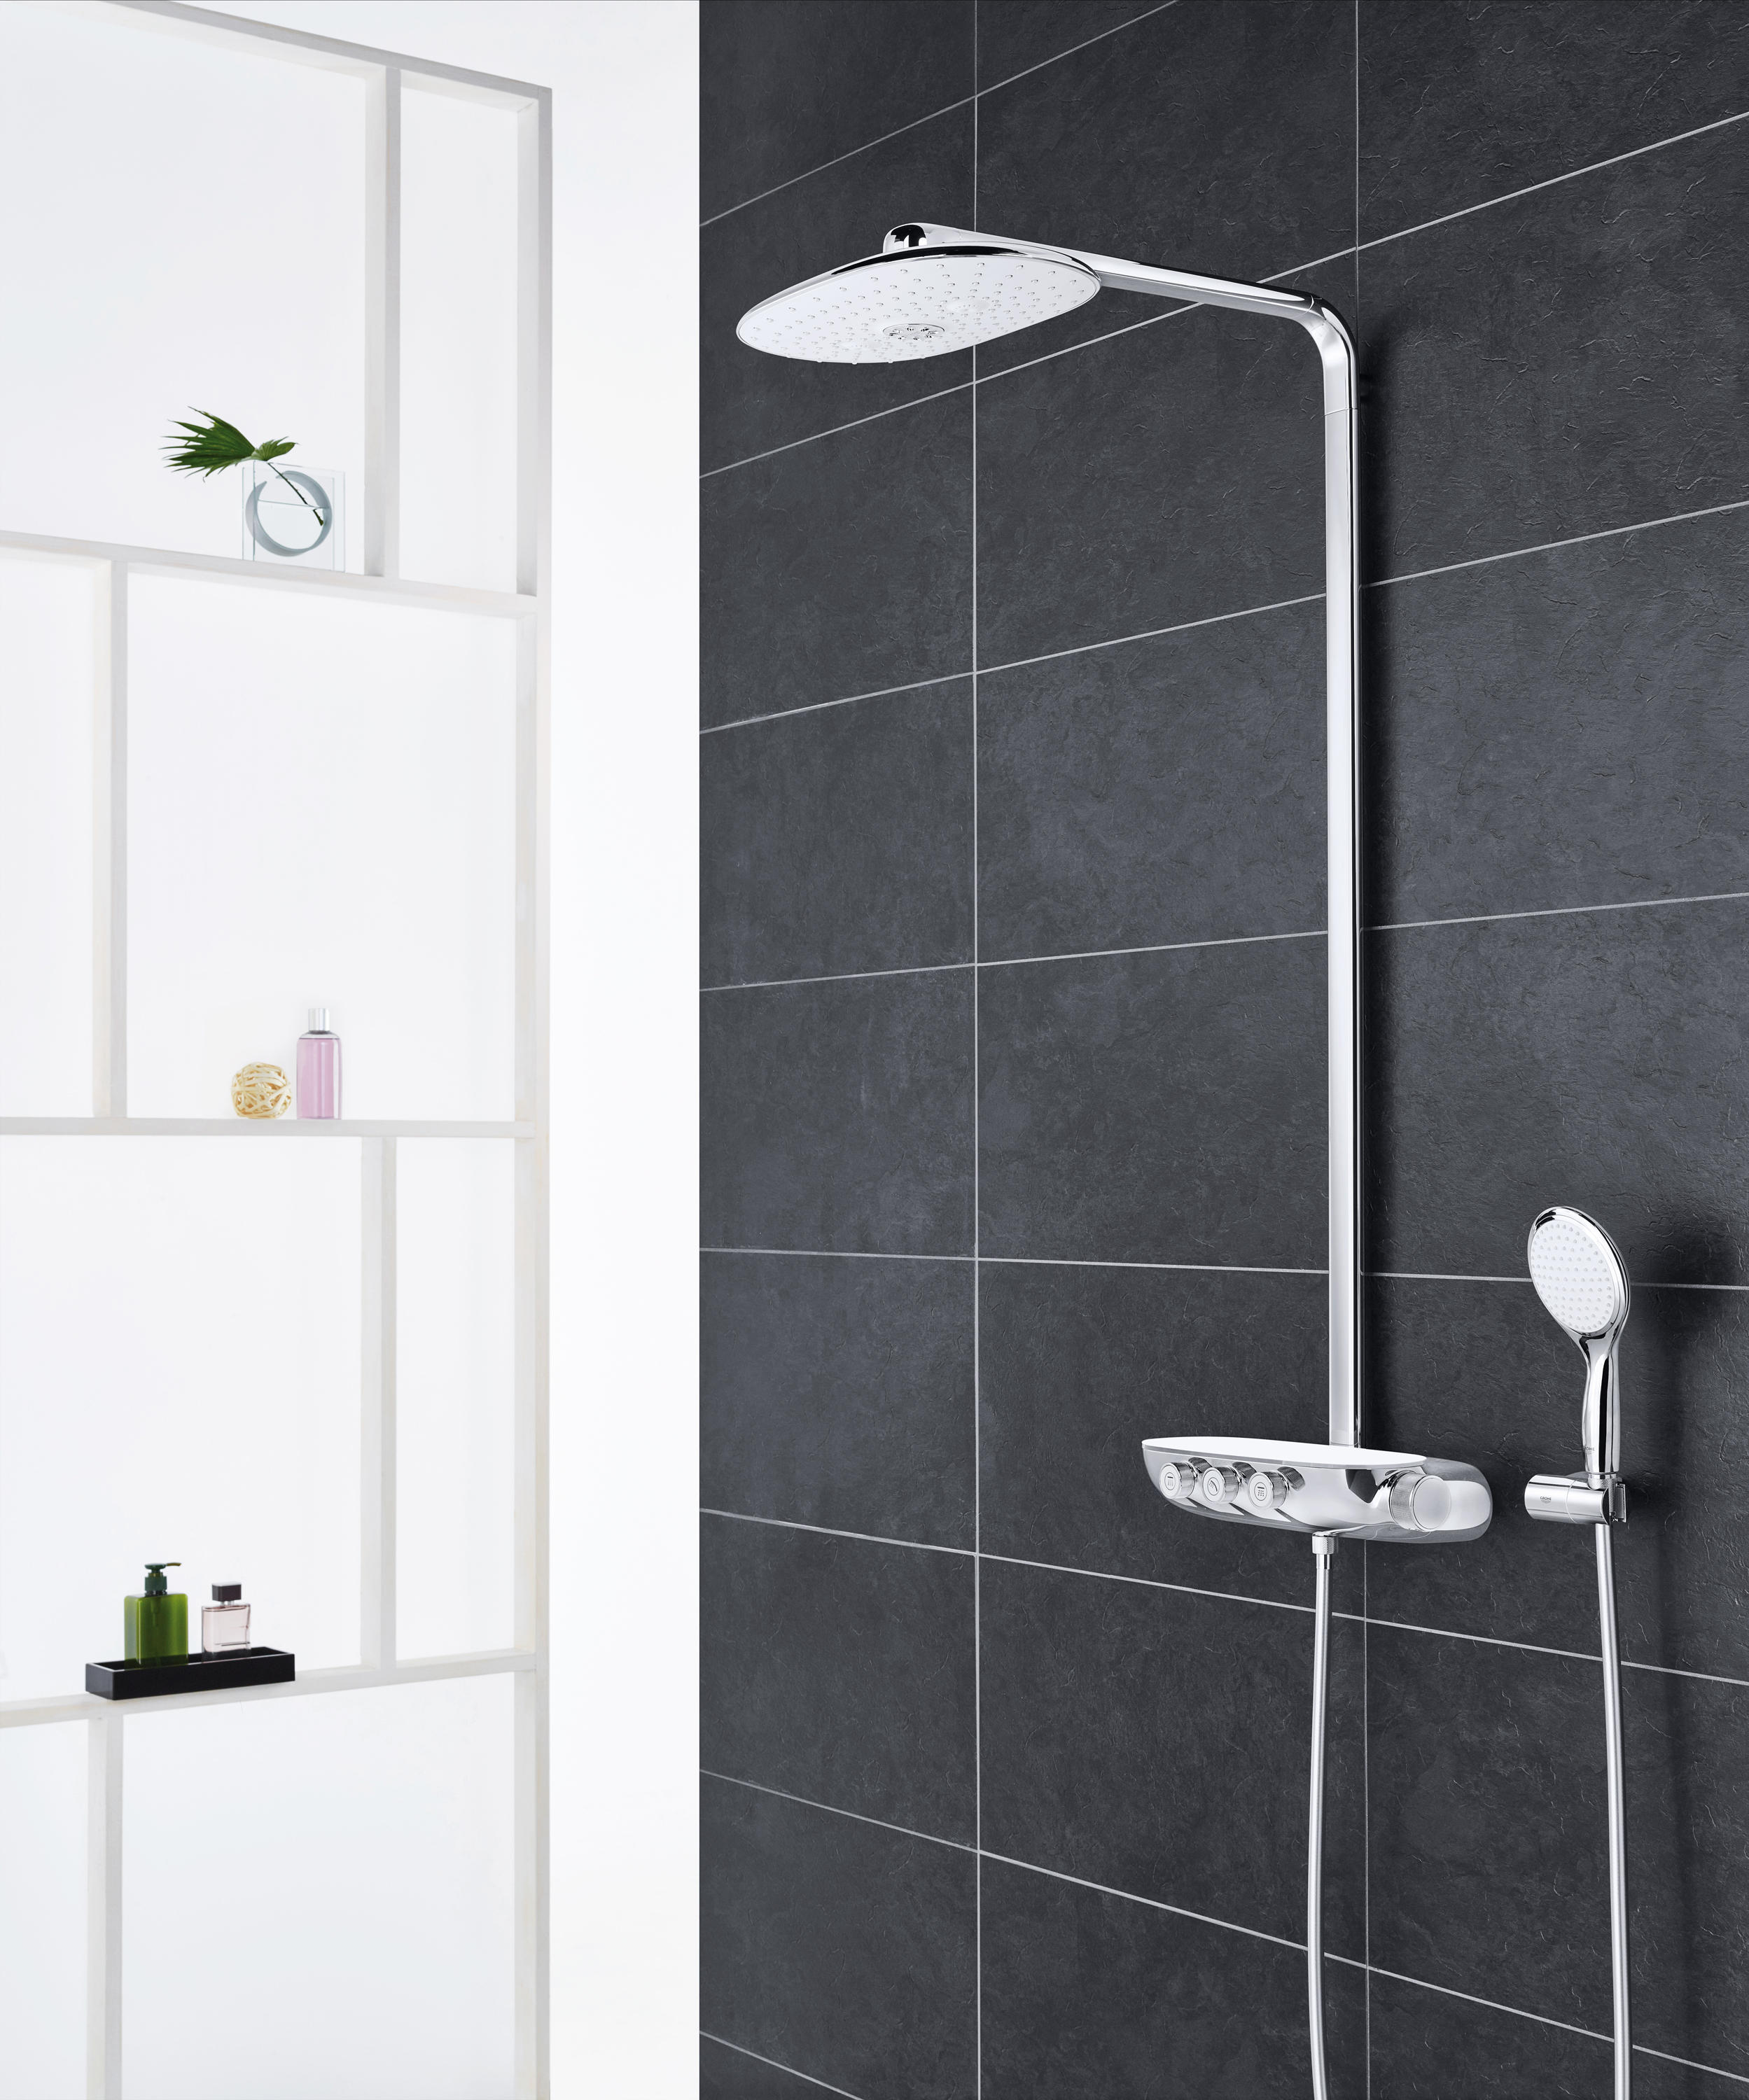 grohtherm smartcontrol perfect shower set with rainshower. Black Bedroom Furniture Sets. Home Design Ideas